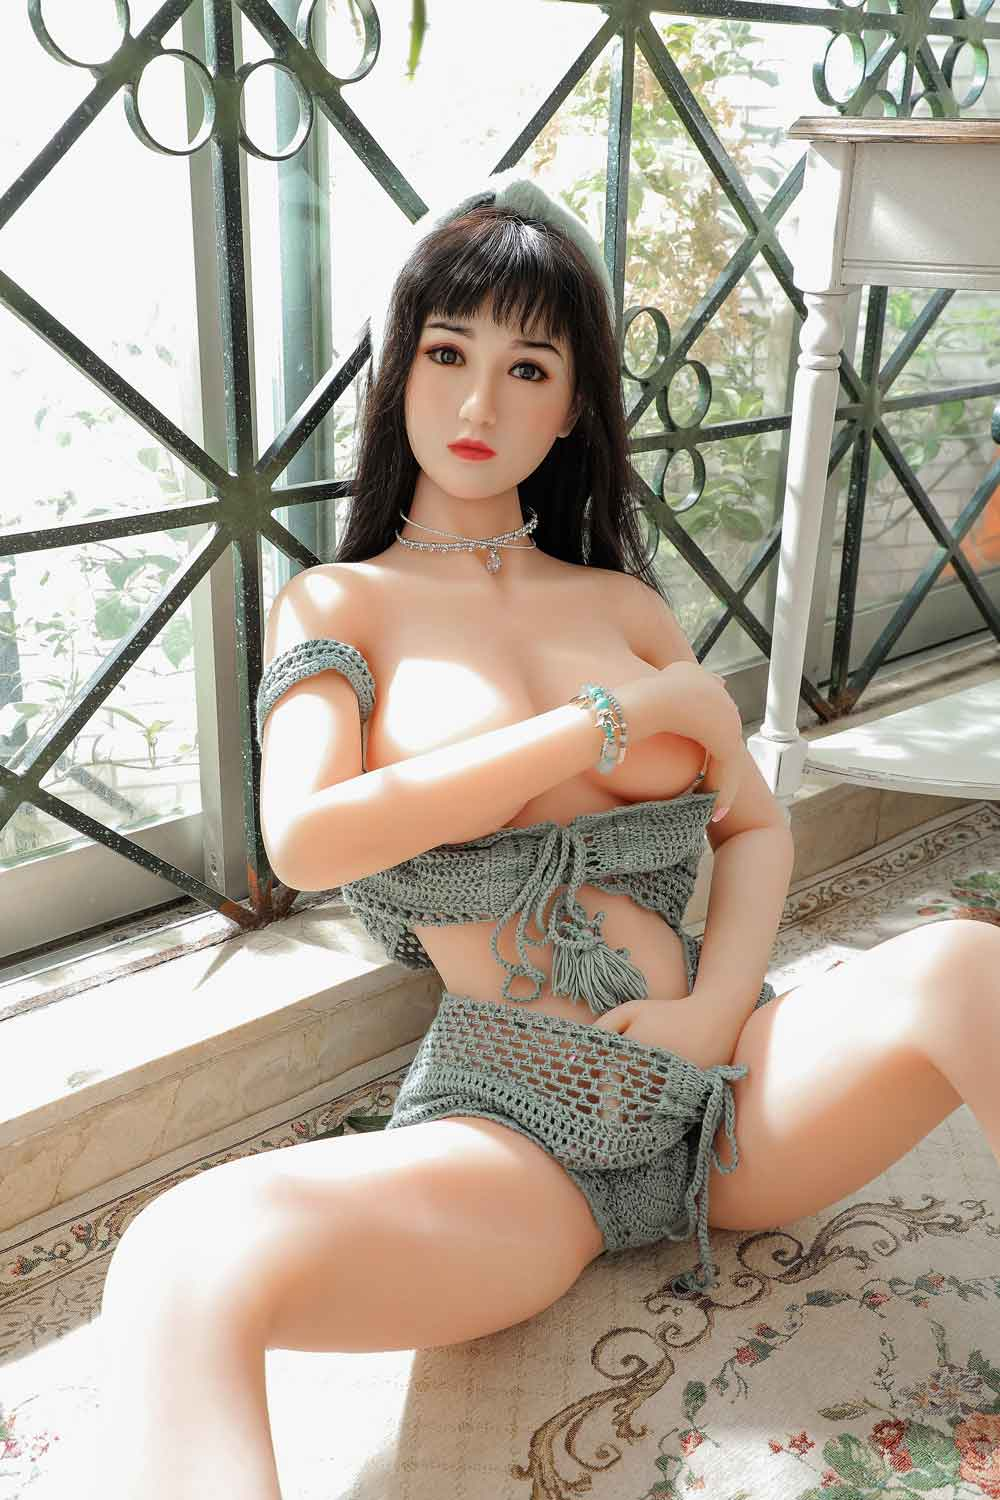 Sex doll with one hand on chest